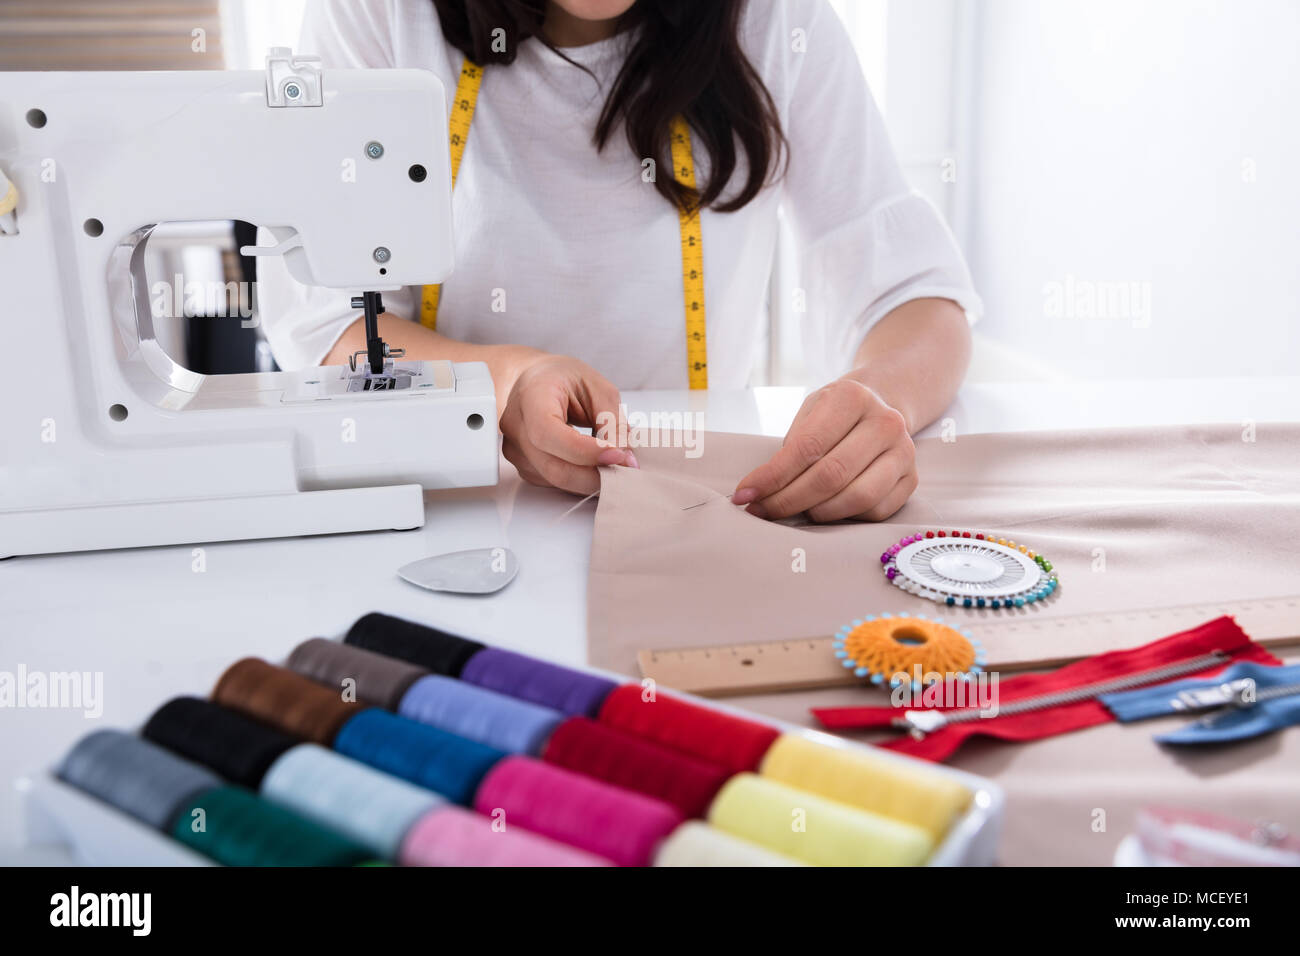 Close-up Of A Fashion Designer's Hand Measuring Fabric With Ruler In Studio - Stock Image